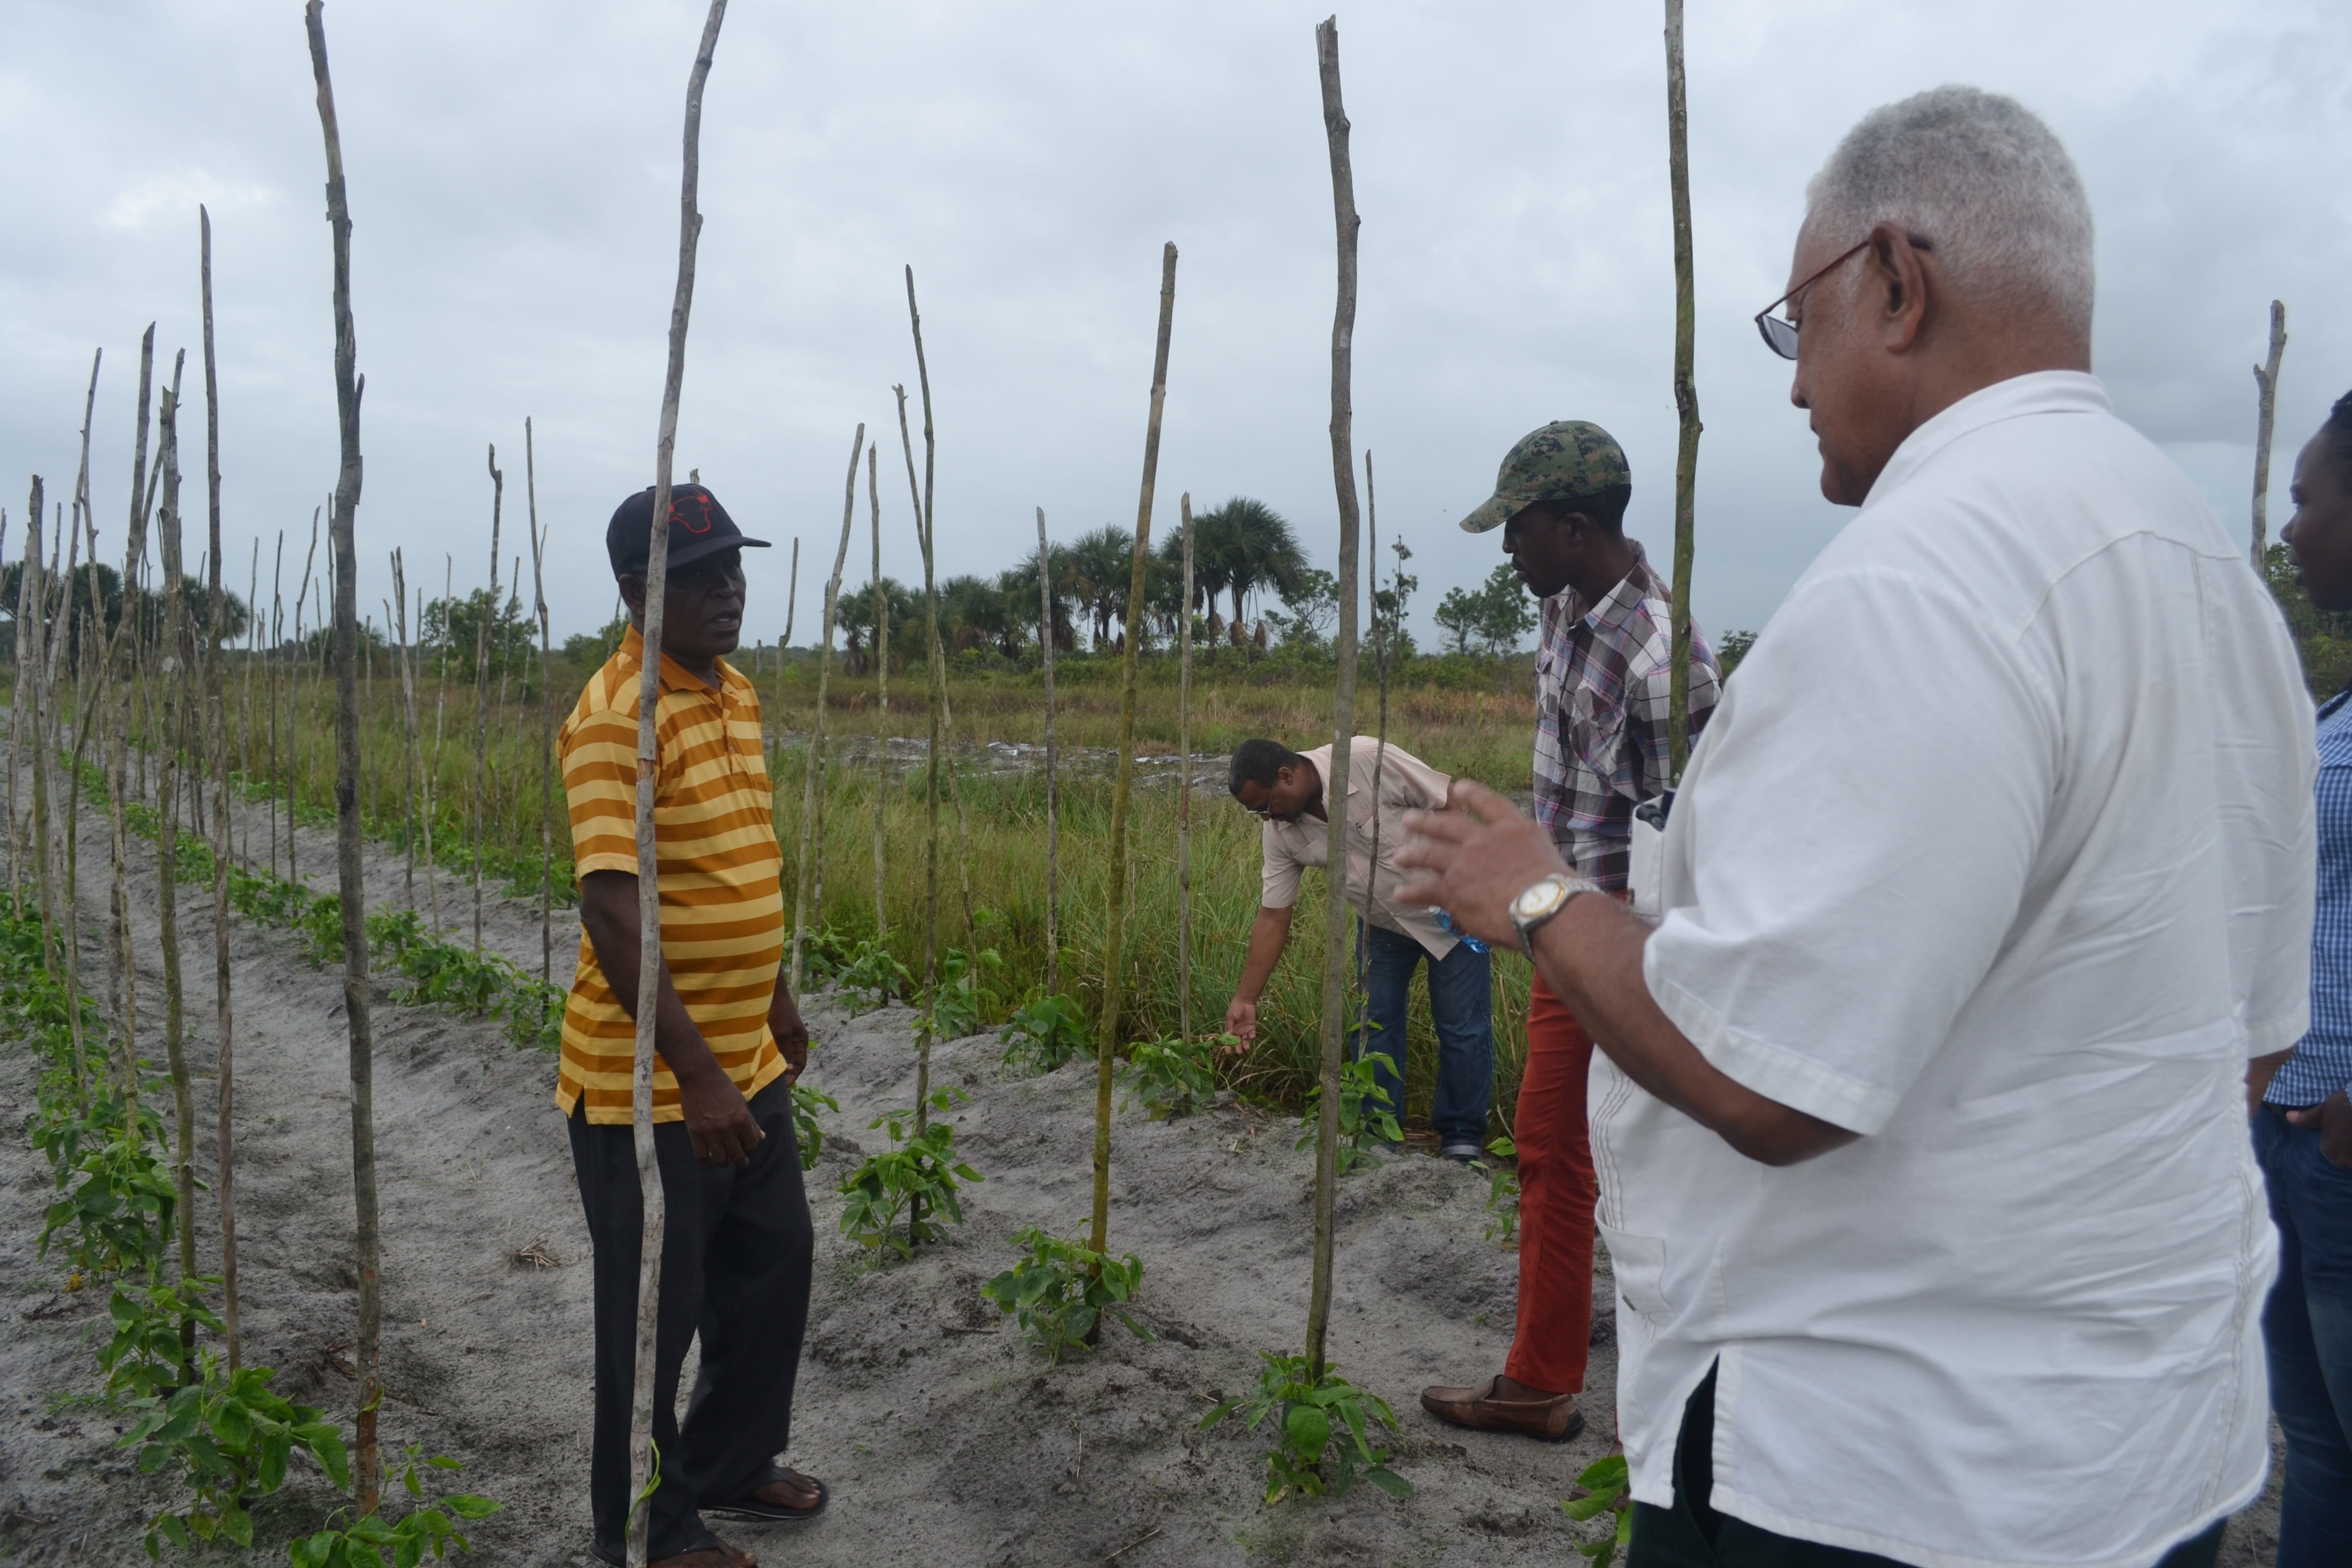 Minister Holder and Mr. Mr. Deonarine Khedu (wearing a striped t-shirt) on his cash crop farm